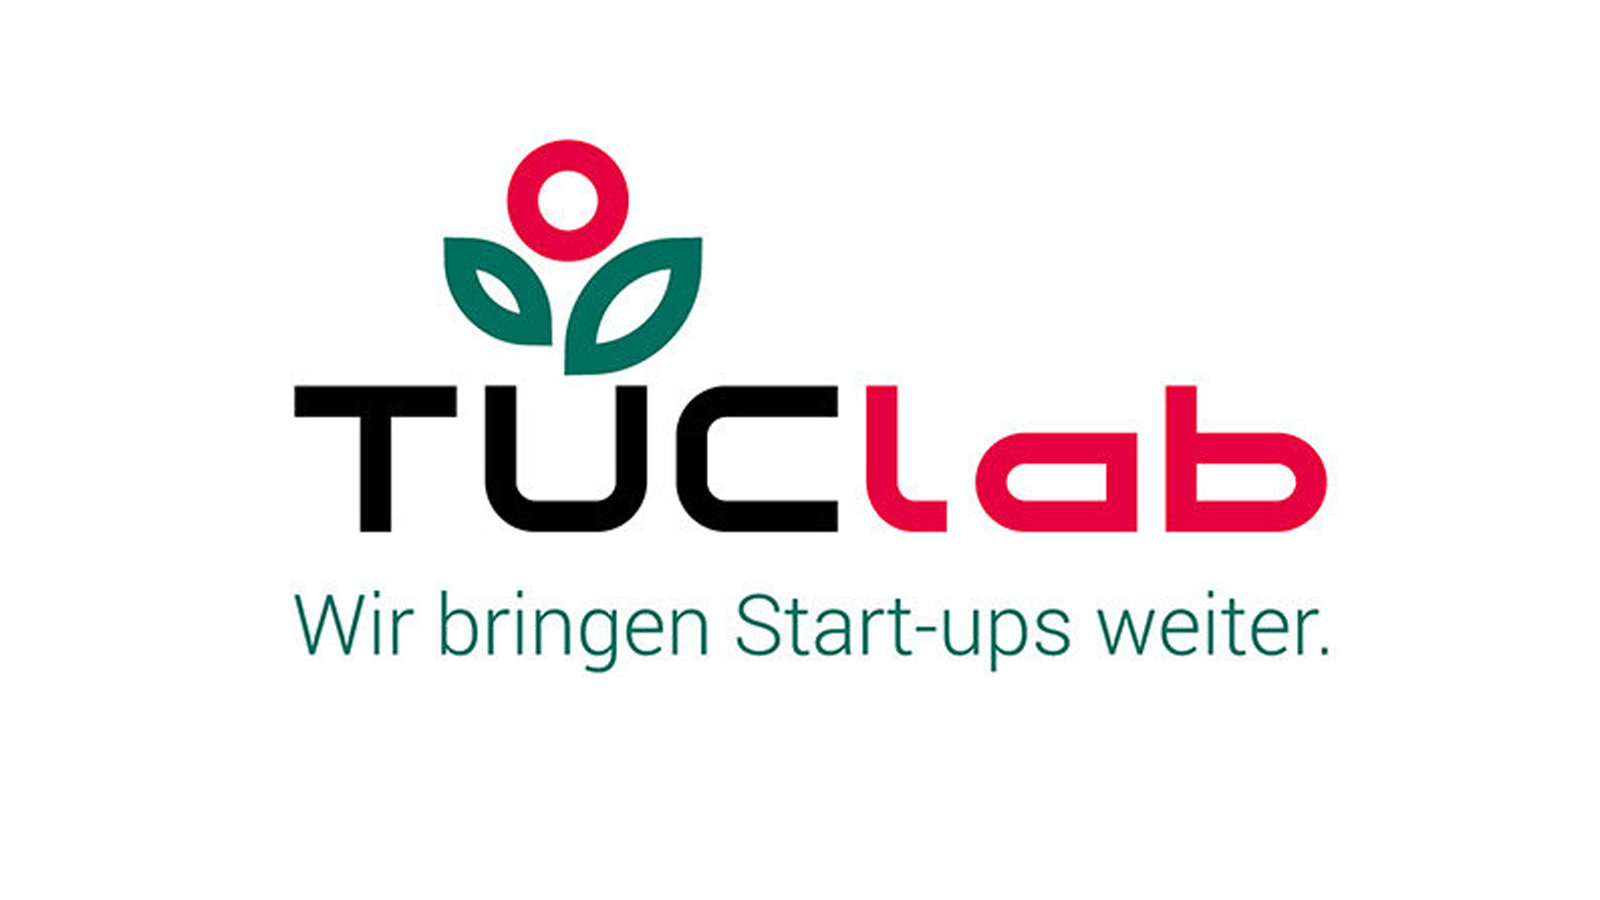 •	The logo of the new TUClab consists of three capital and three lower-case letters.